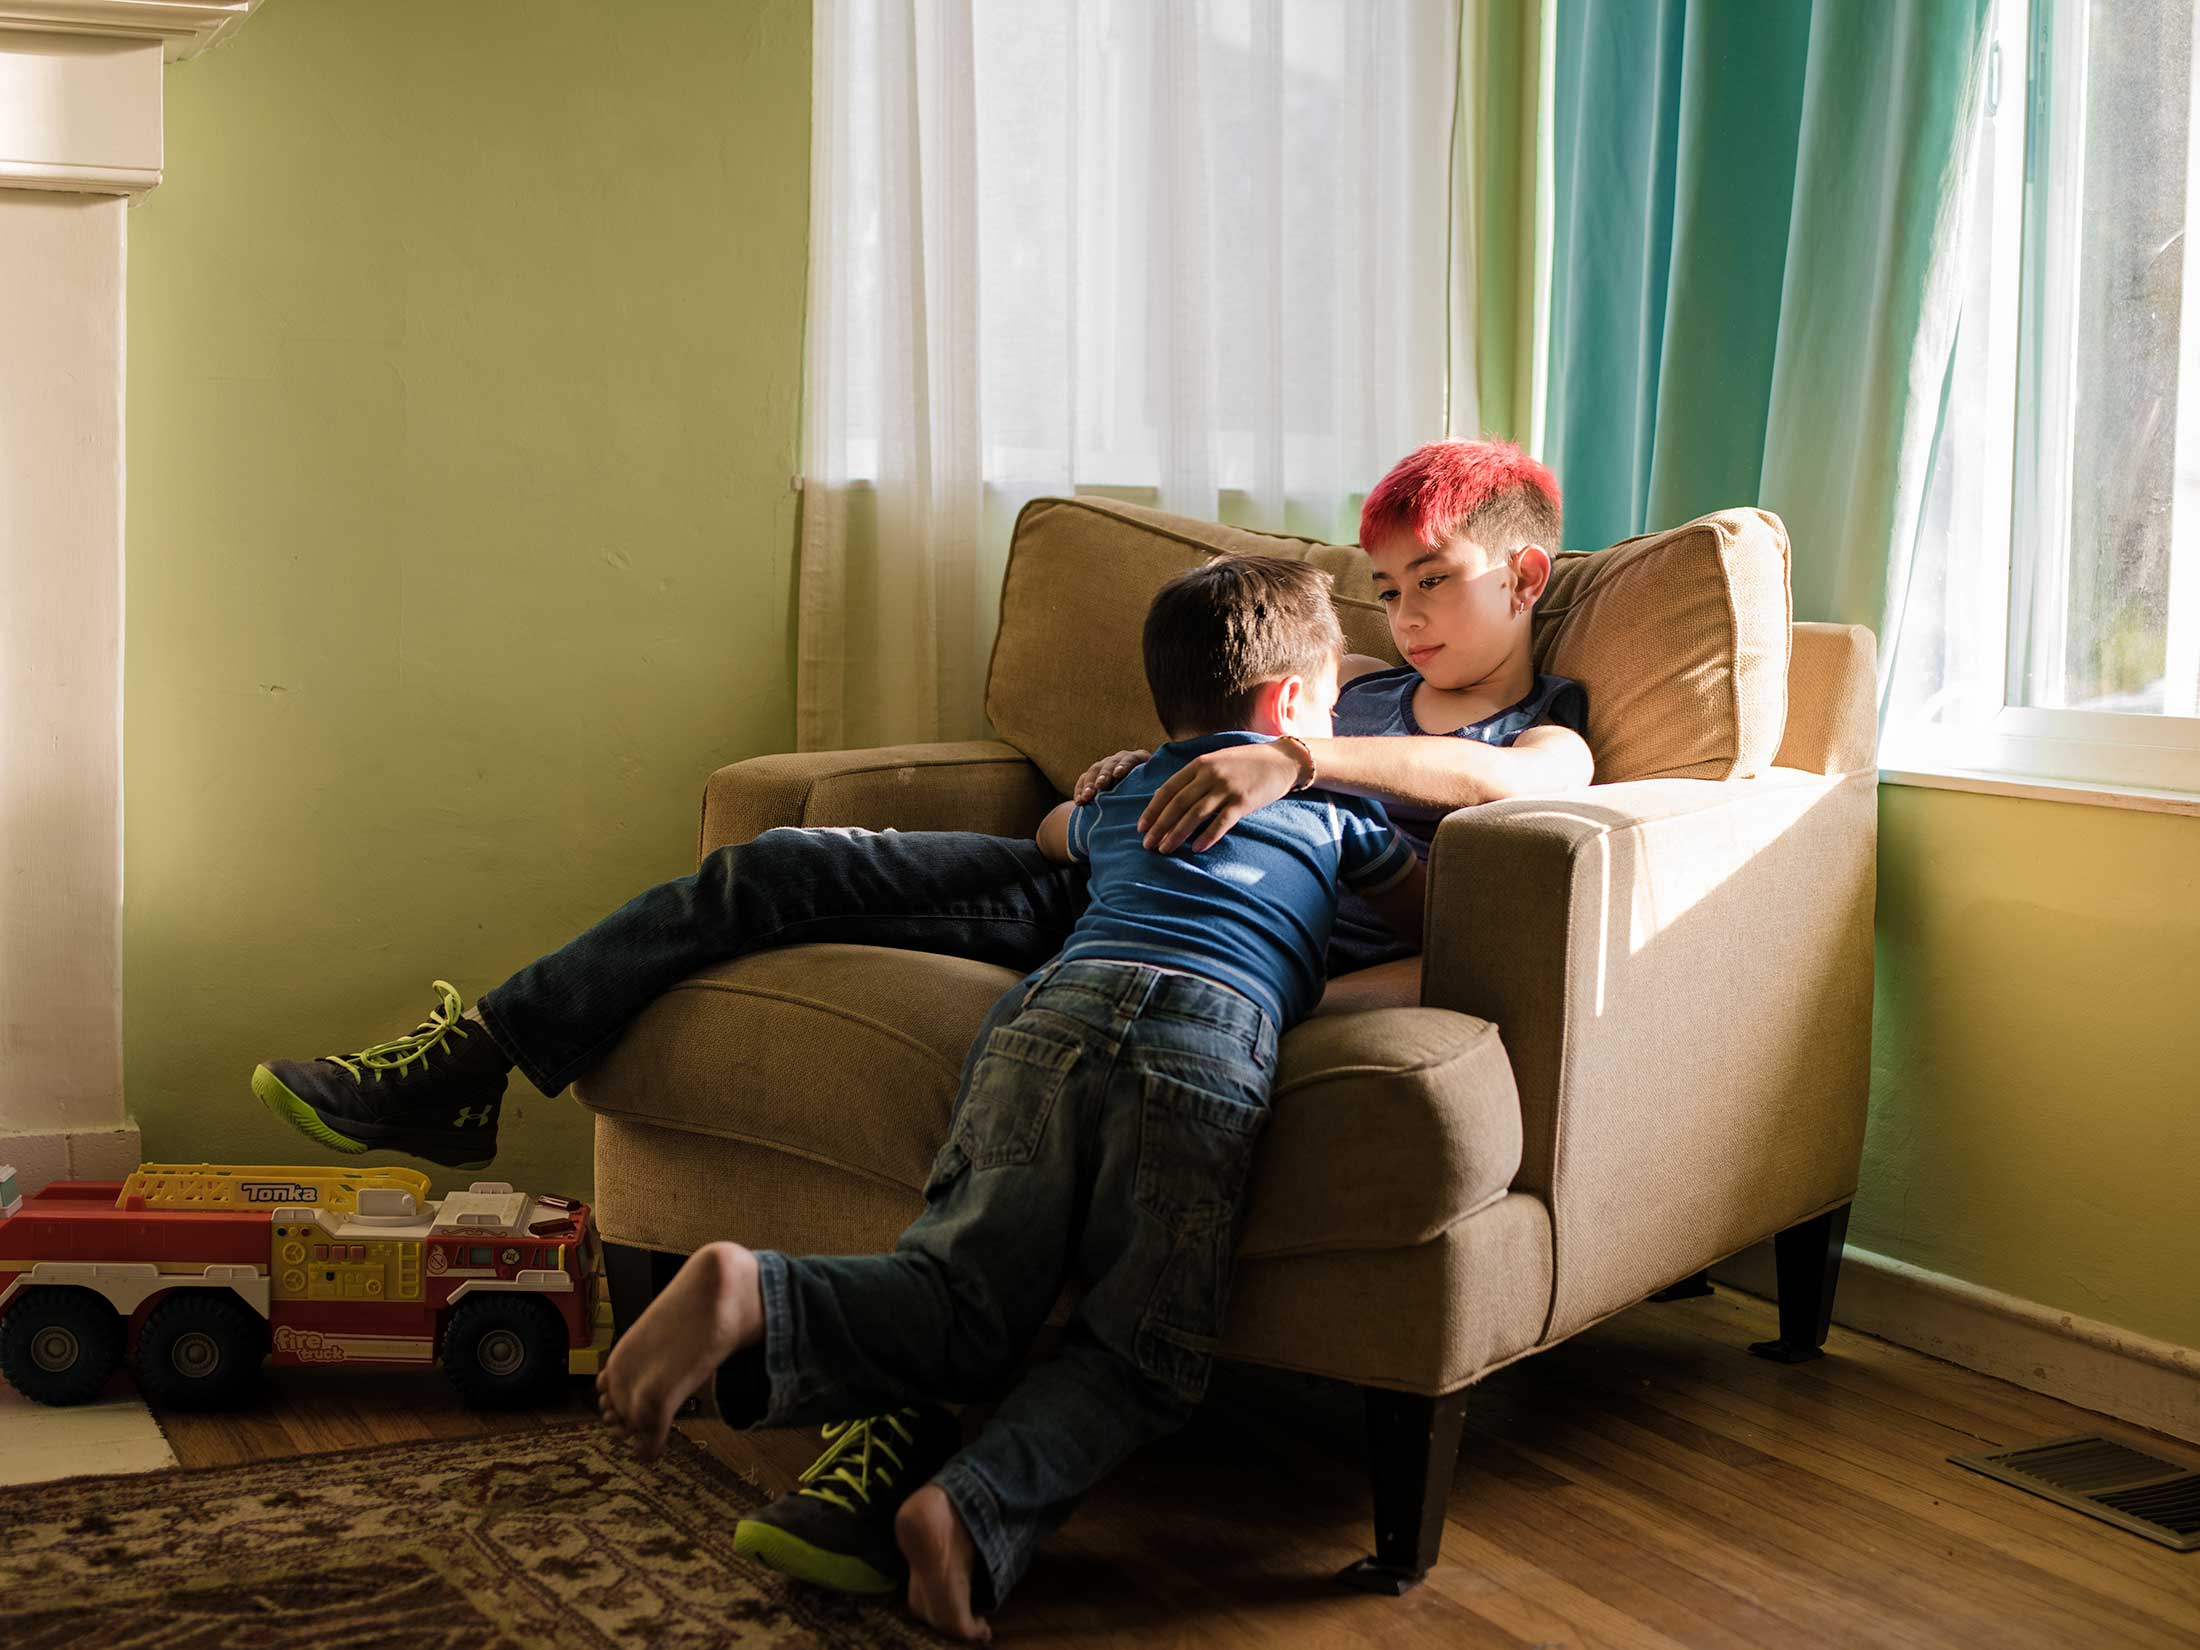 Transgender Boy And His Little Brother / Bay Area, California